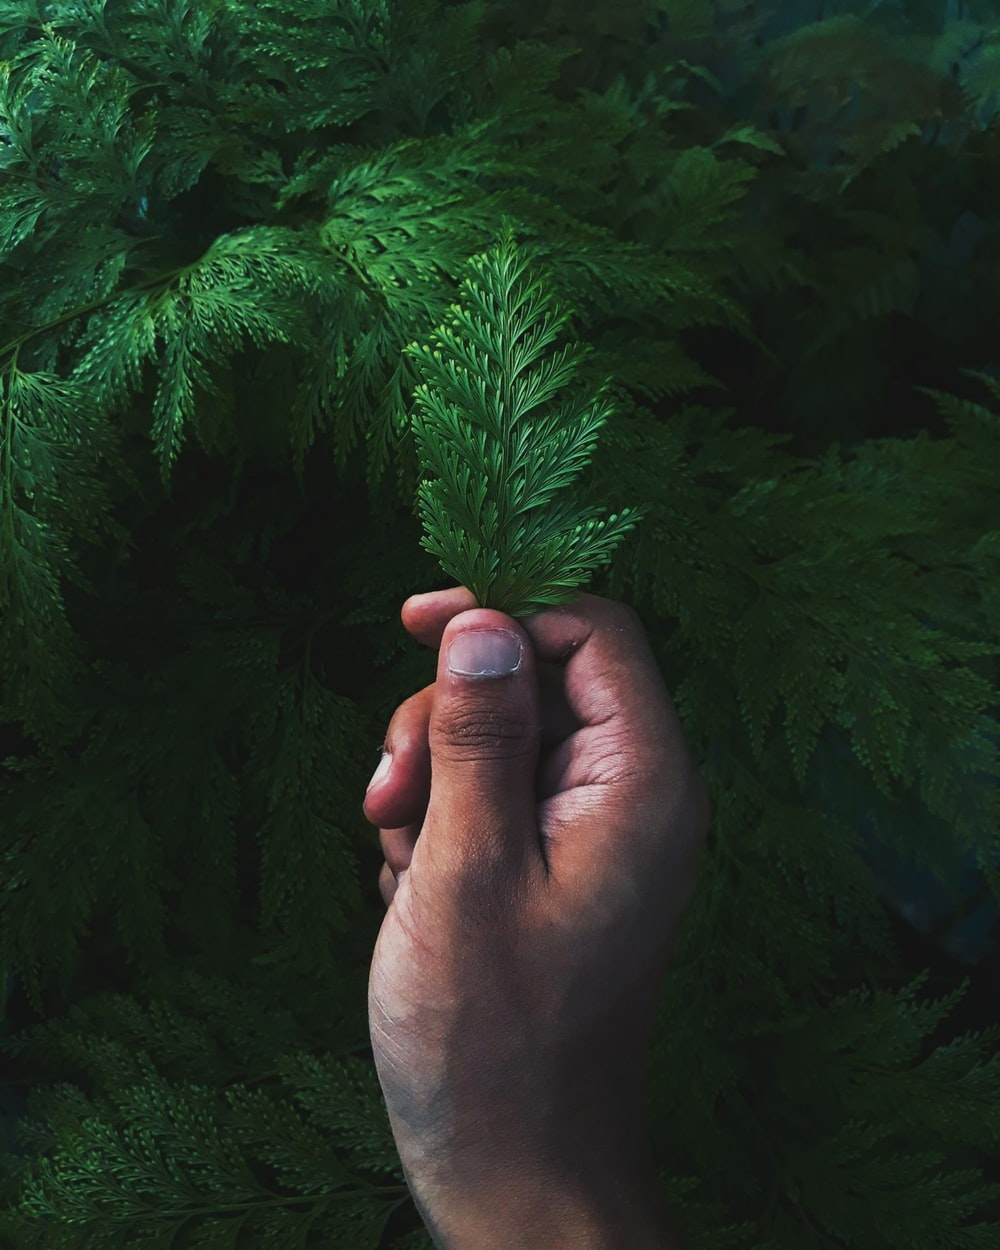 person holding green pine tree leaf